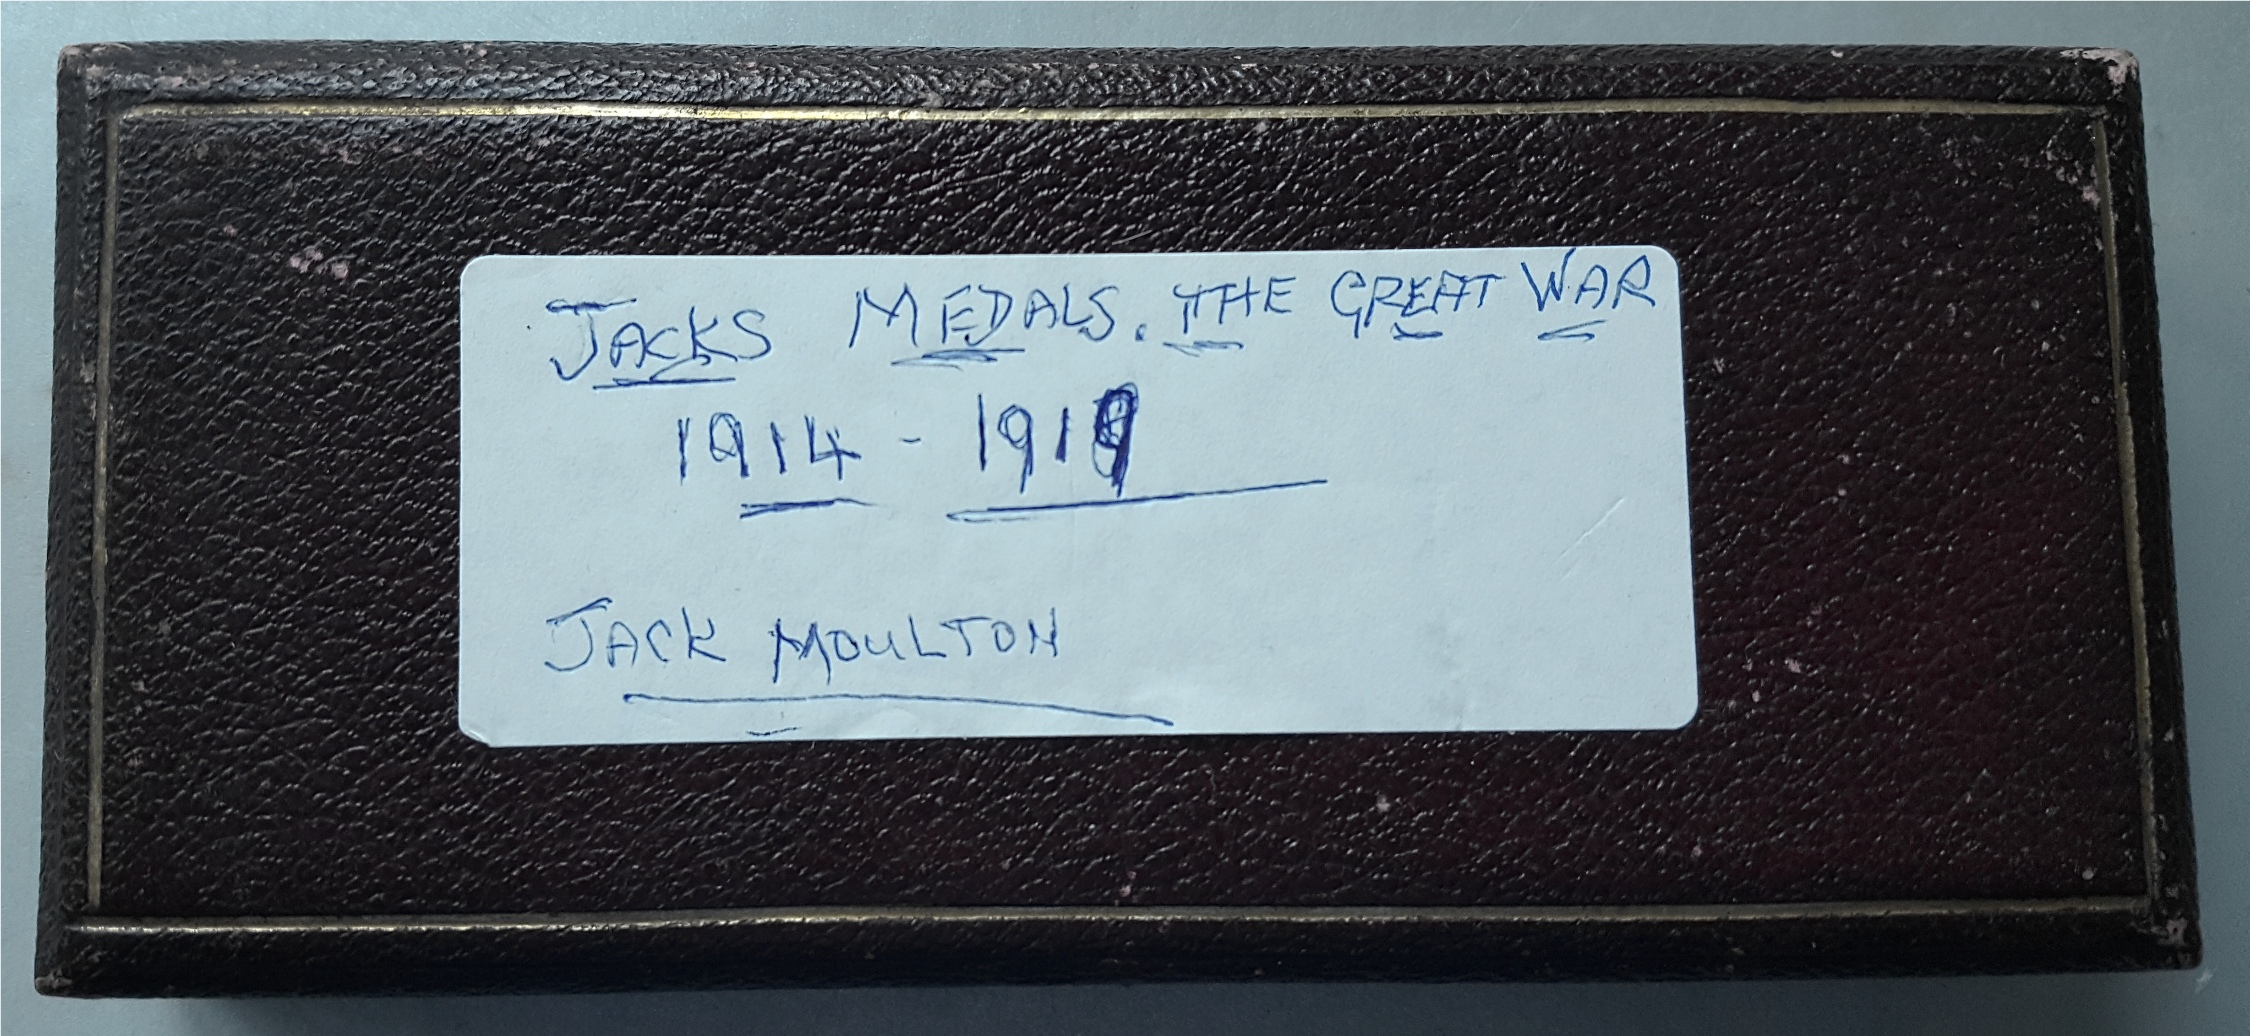 Lot 51 - Military Medals WWI & WWII St Johns Medals Miniatures Pt 41059 J H Moulton R. Wilts Yeo